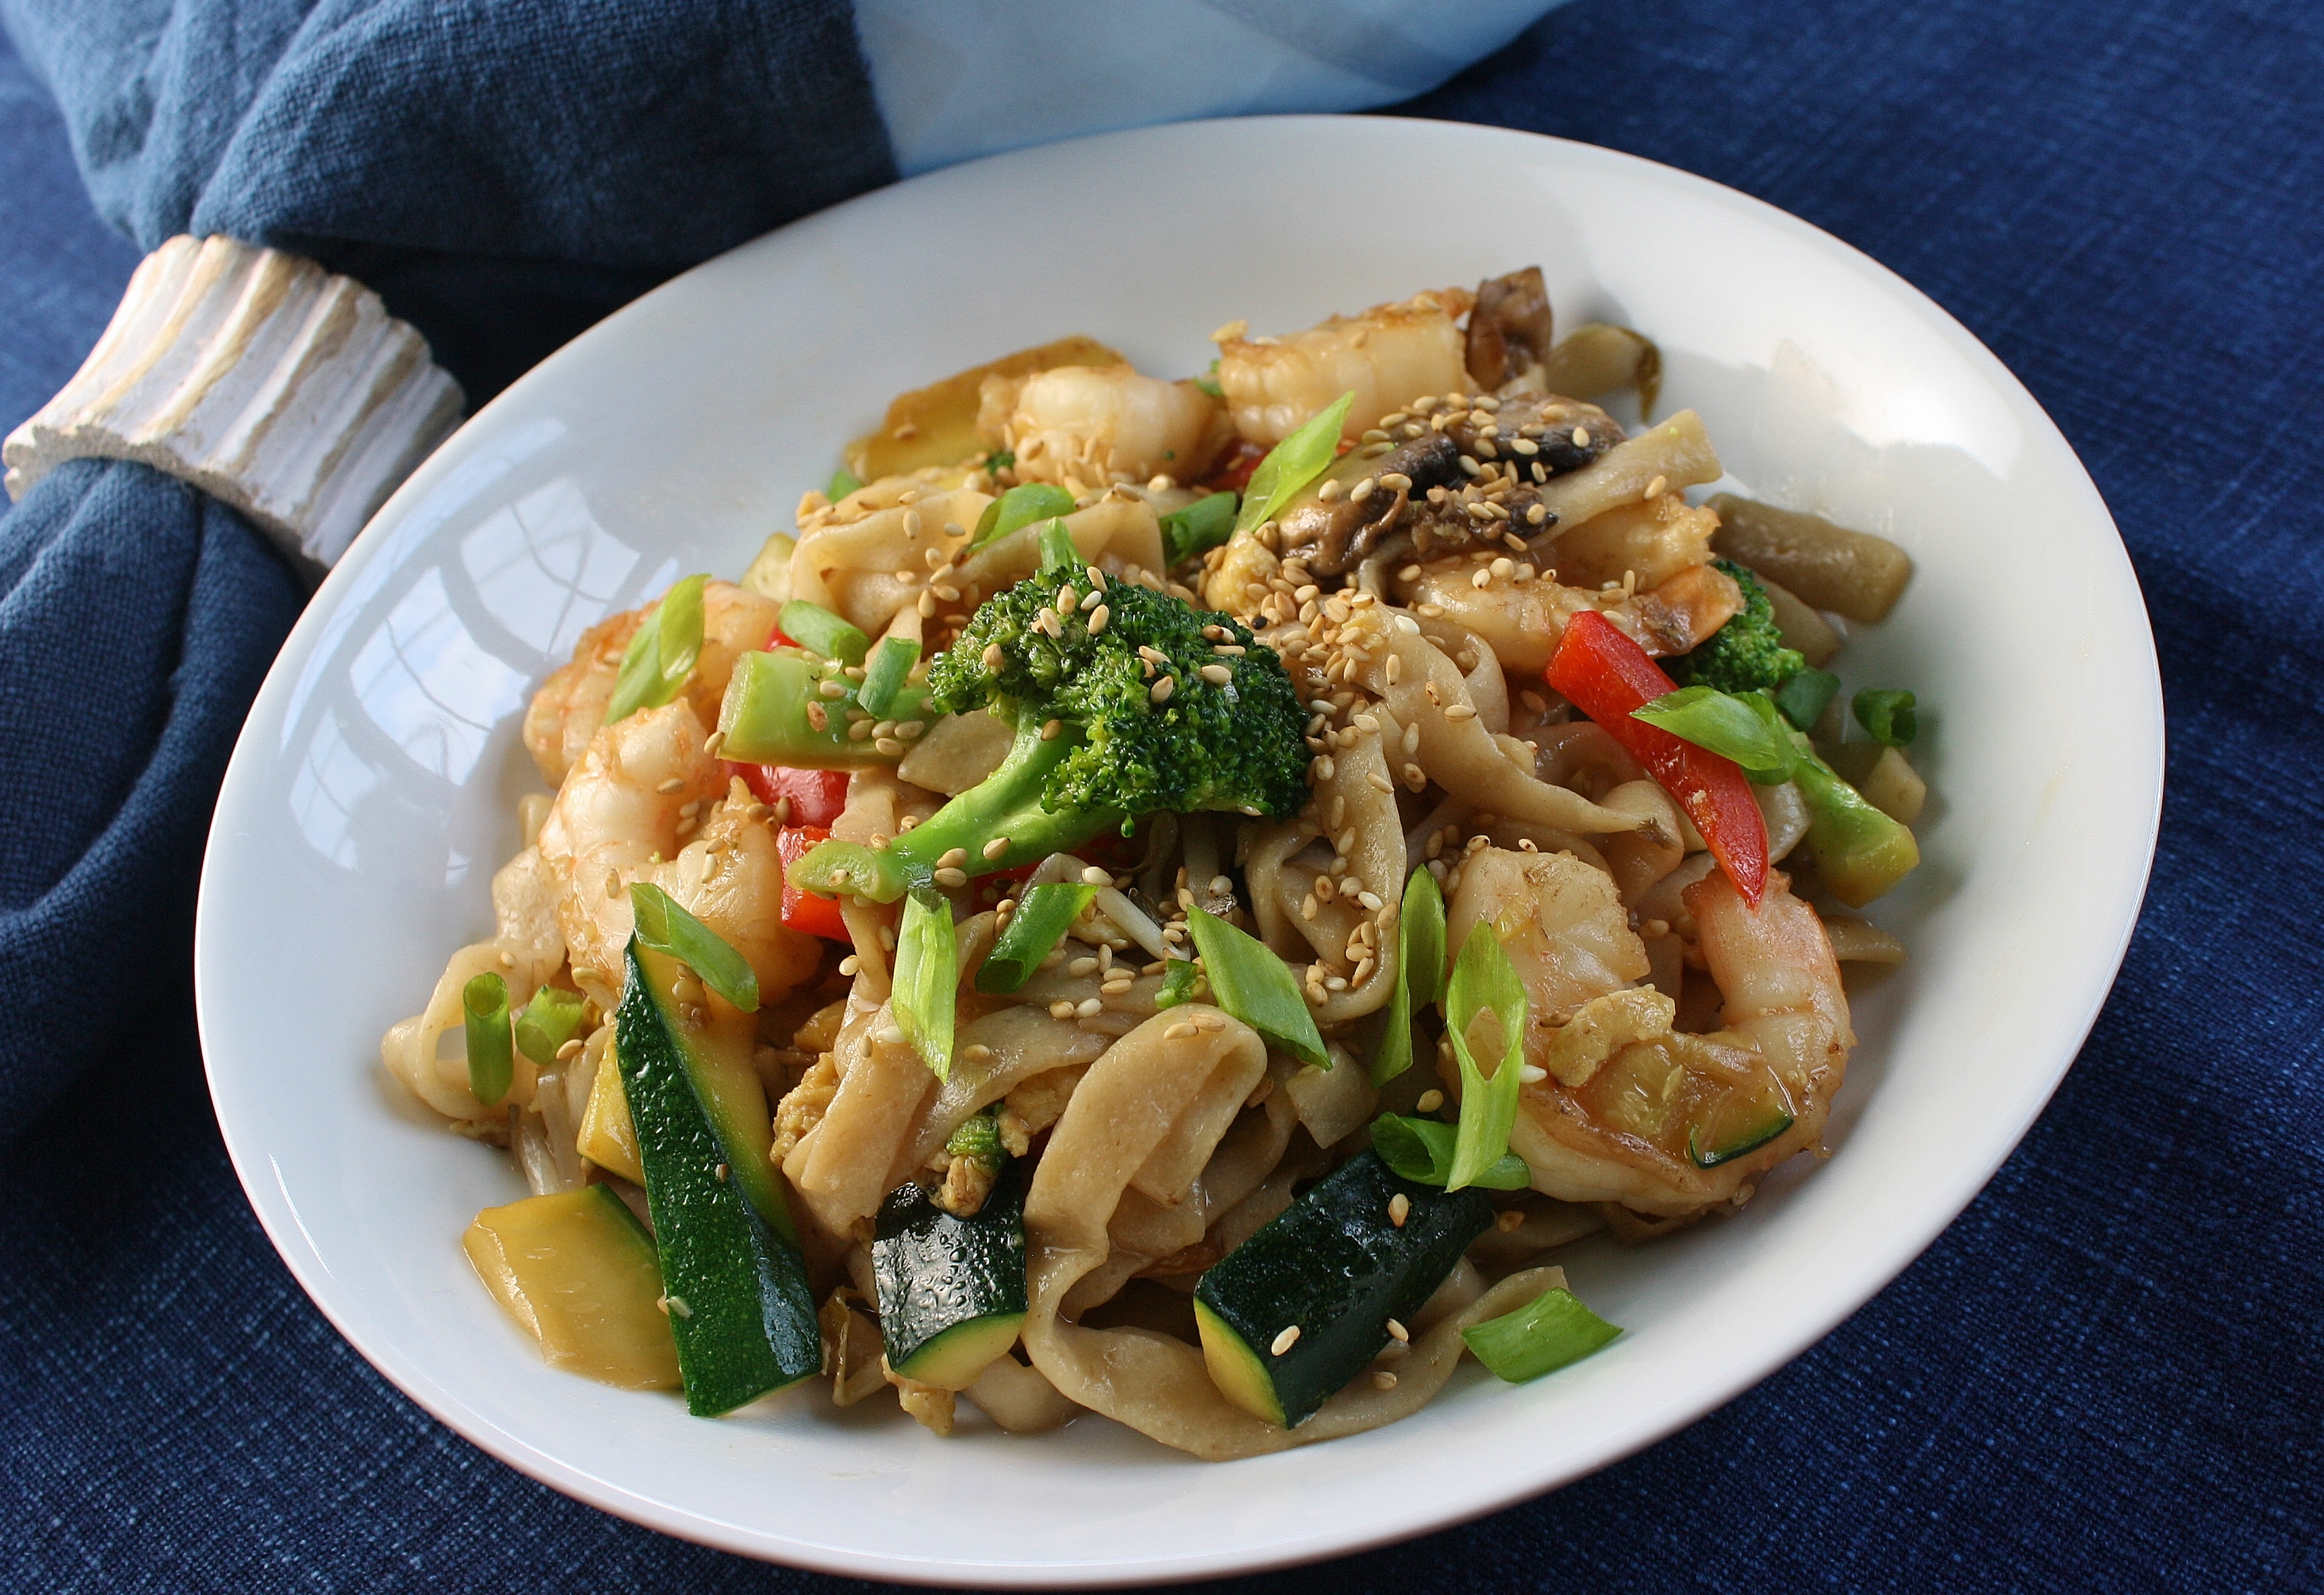 Shrimp Lo Mein with Broccoli